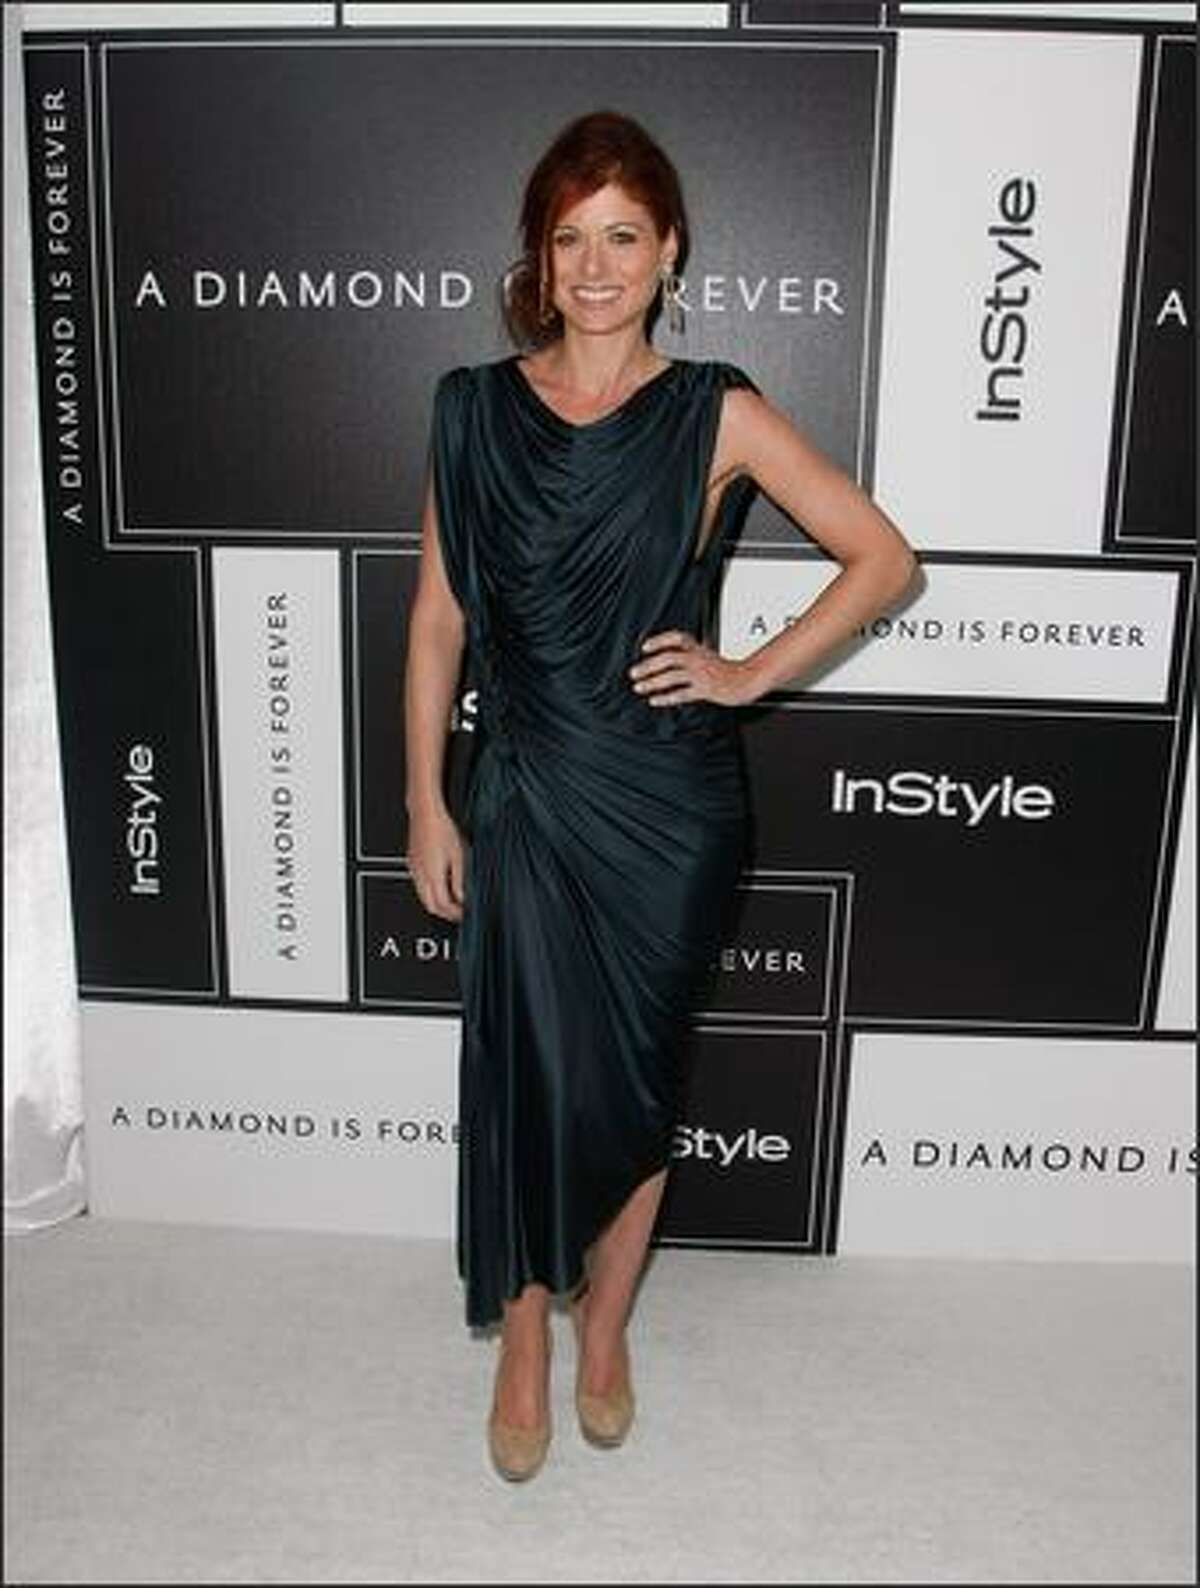 Actress Debra Messing attends the 8th Annual Awards Season Diamond Fashion Show Preview hosted by the Diamond Information Center and InStyle held at The Beverly Hills Hotel on Thursday in Beverly Hills, Calif.